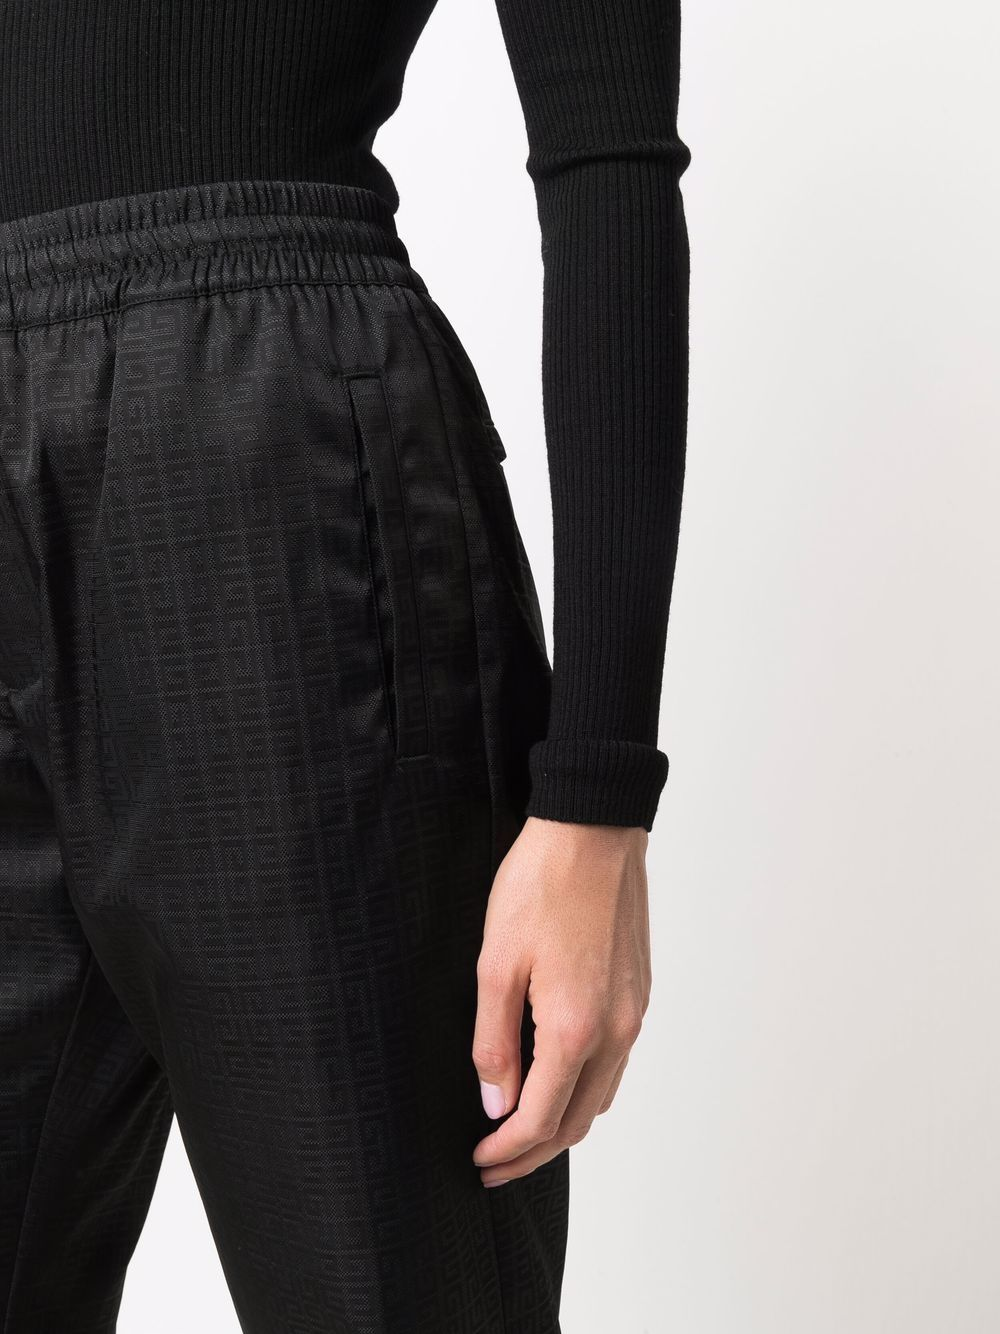 Black elasticated-waist trousers featuring 4G all over monogram print GIVENCHY |  | BW50R513PK001